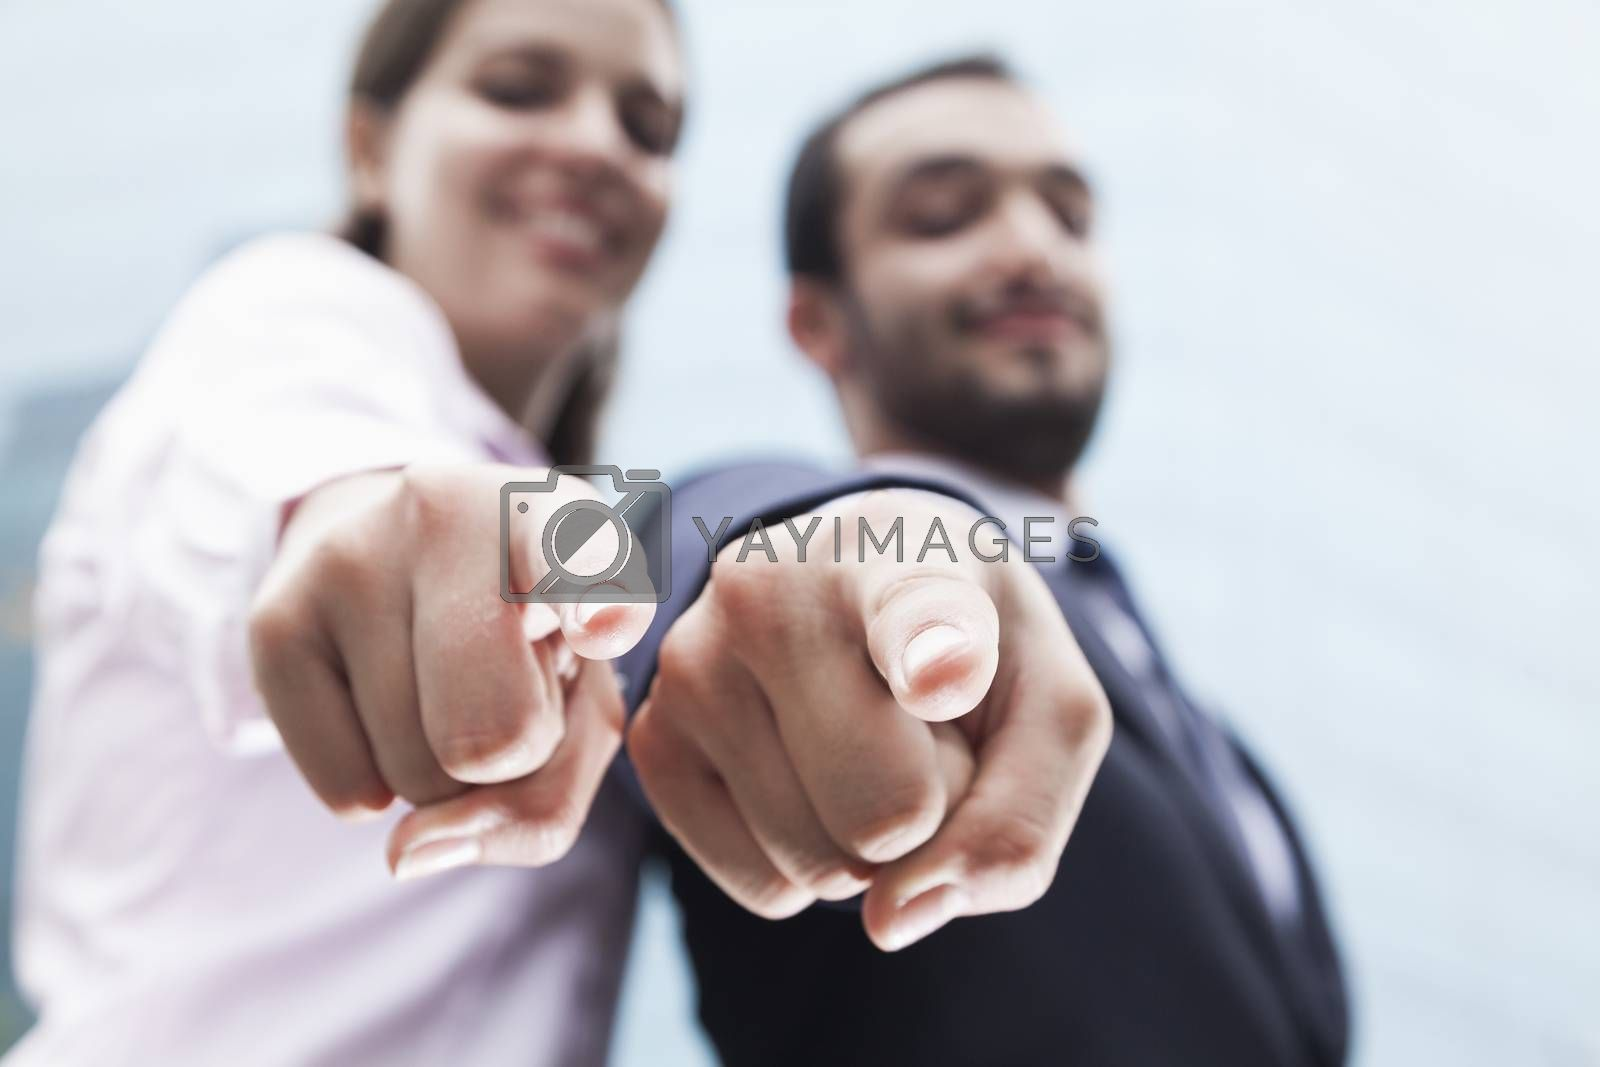 Close-up of two business people's fingers pointing at camera